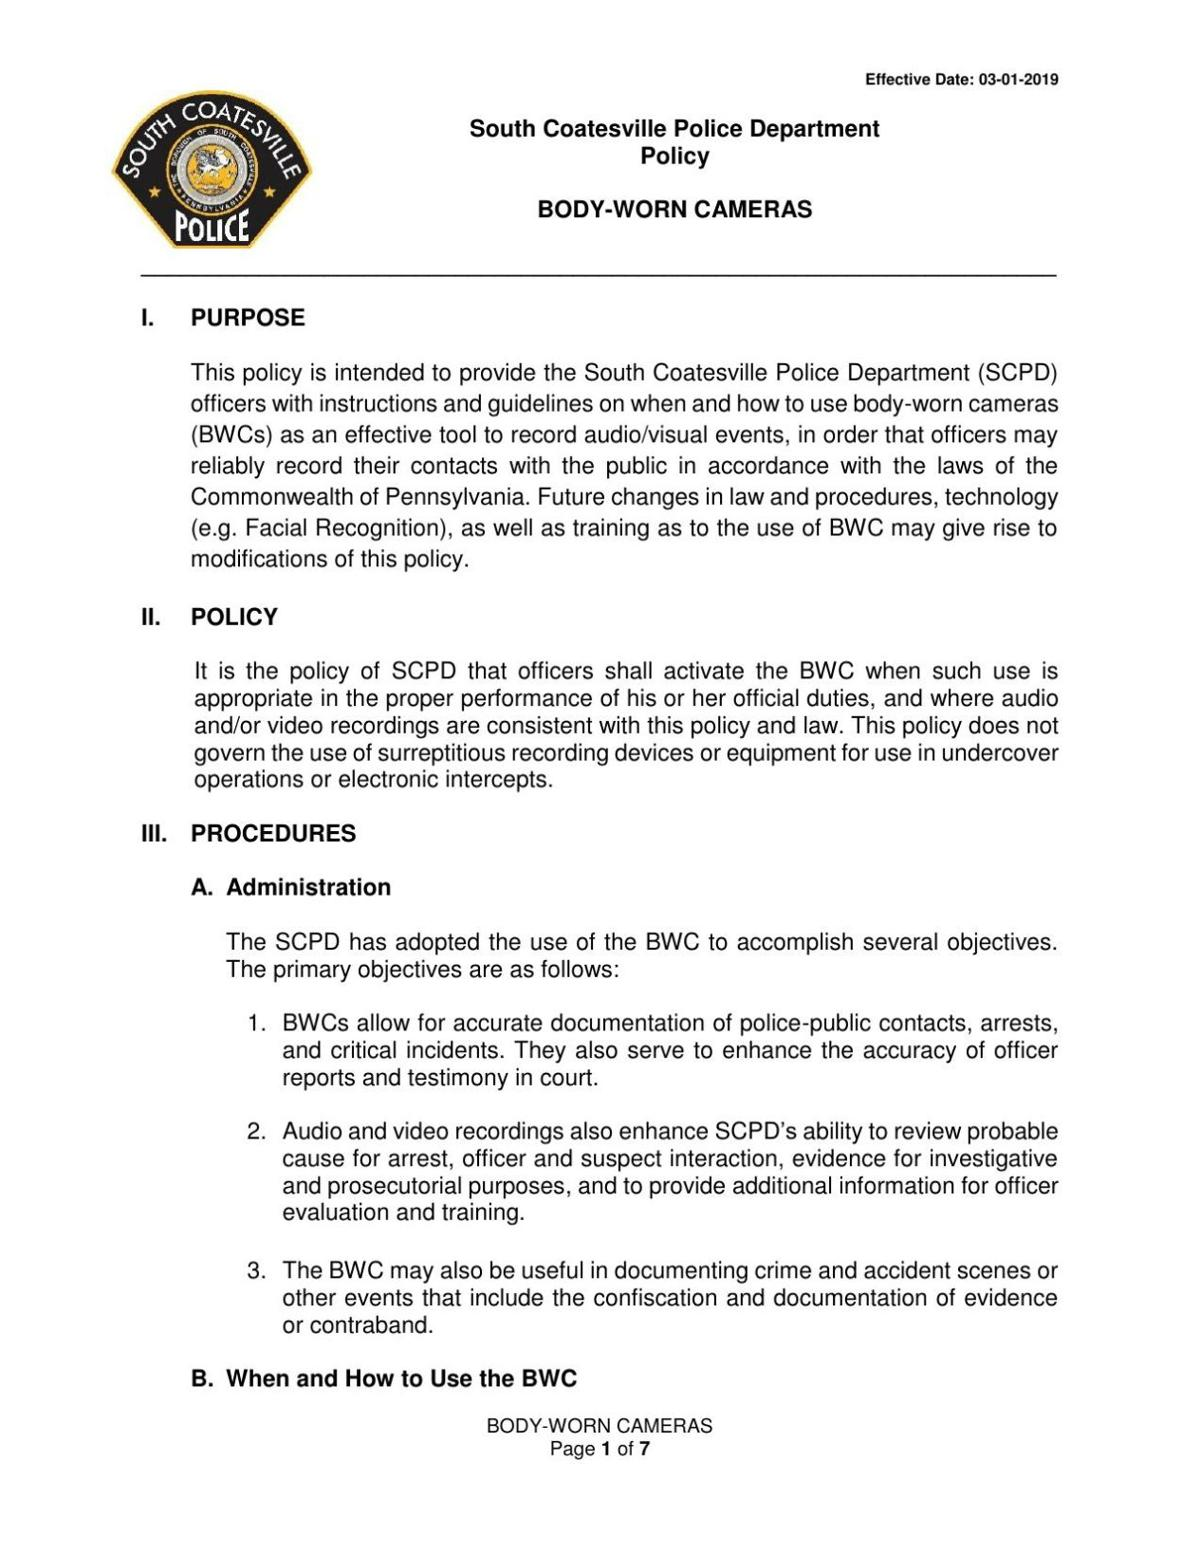 South Coatesville policy on body-worn cameras